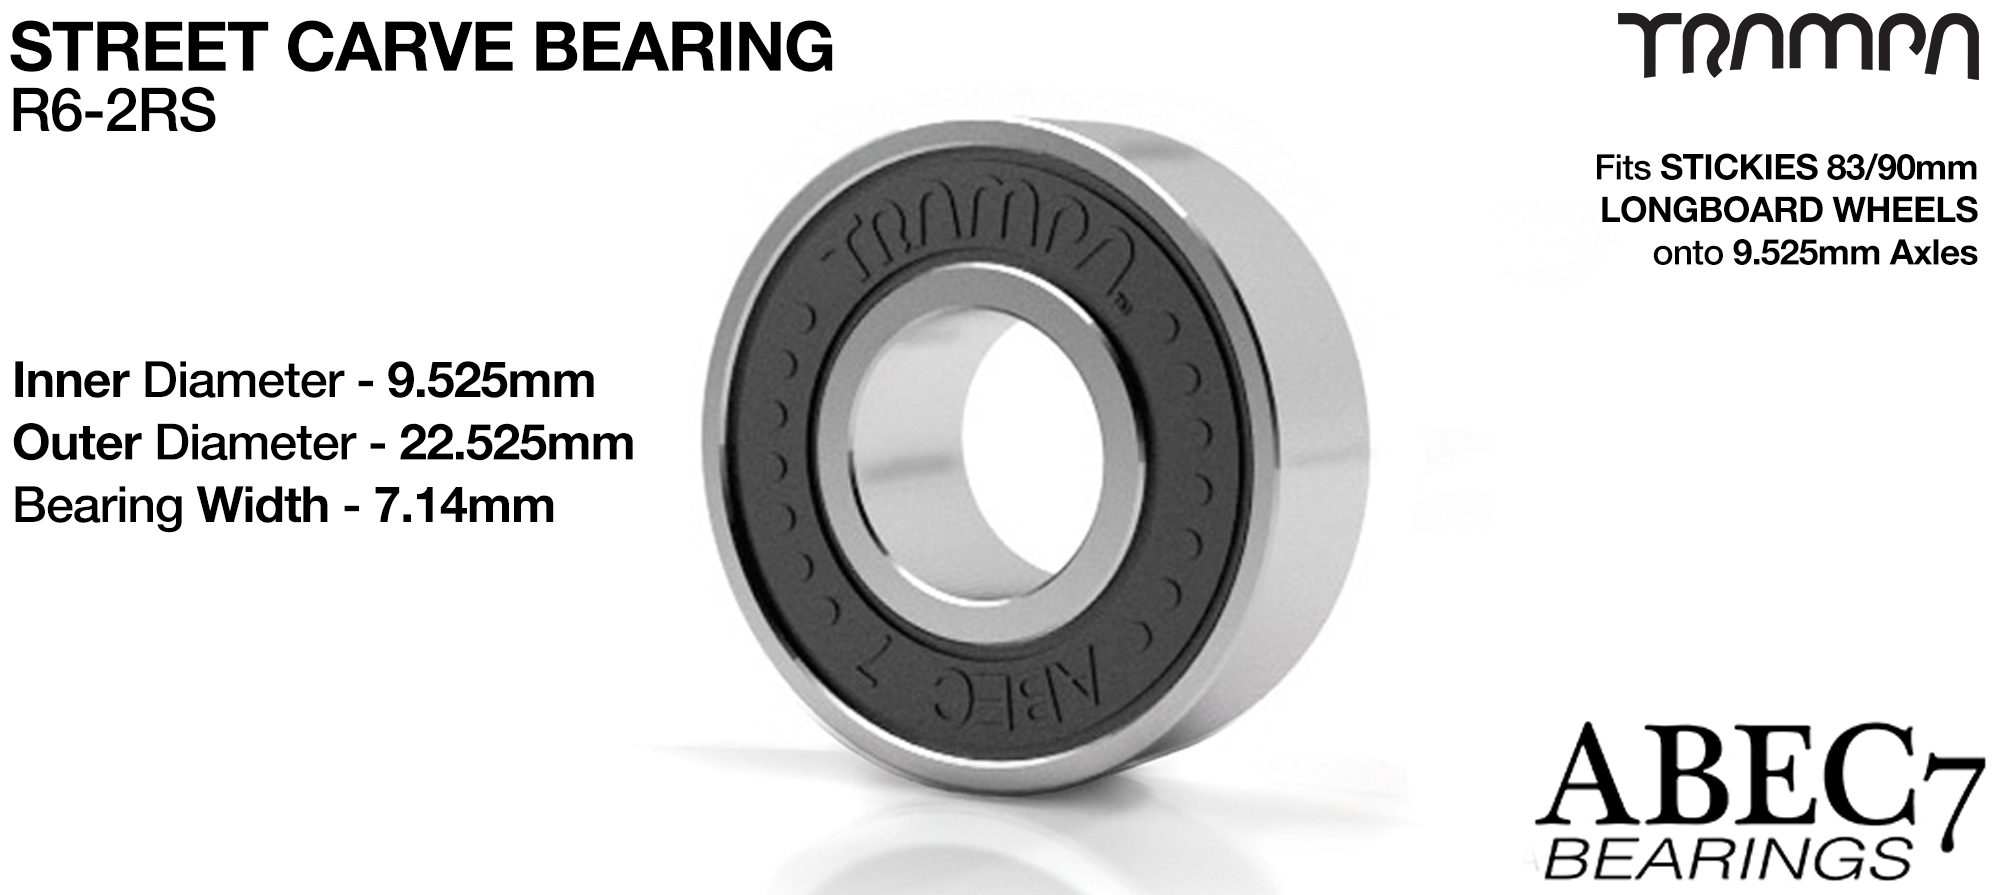 2x BLACK ABEC 7 R6-2RS 9.525mm Bearings (+£5)